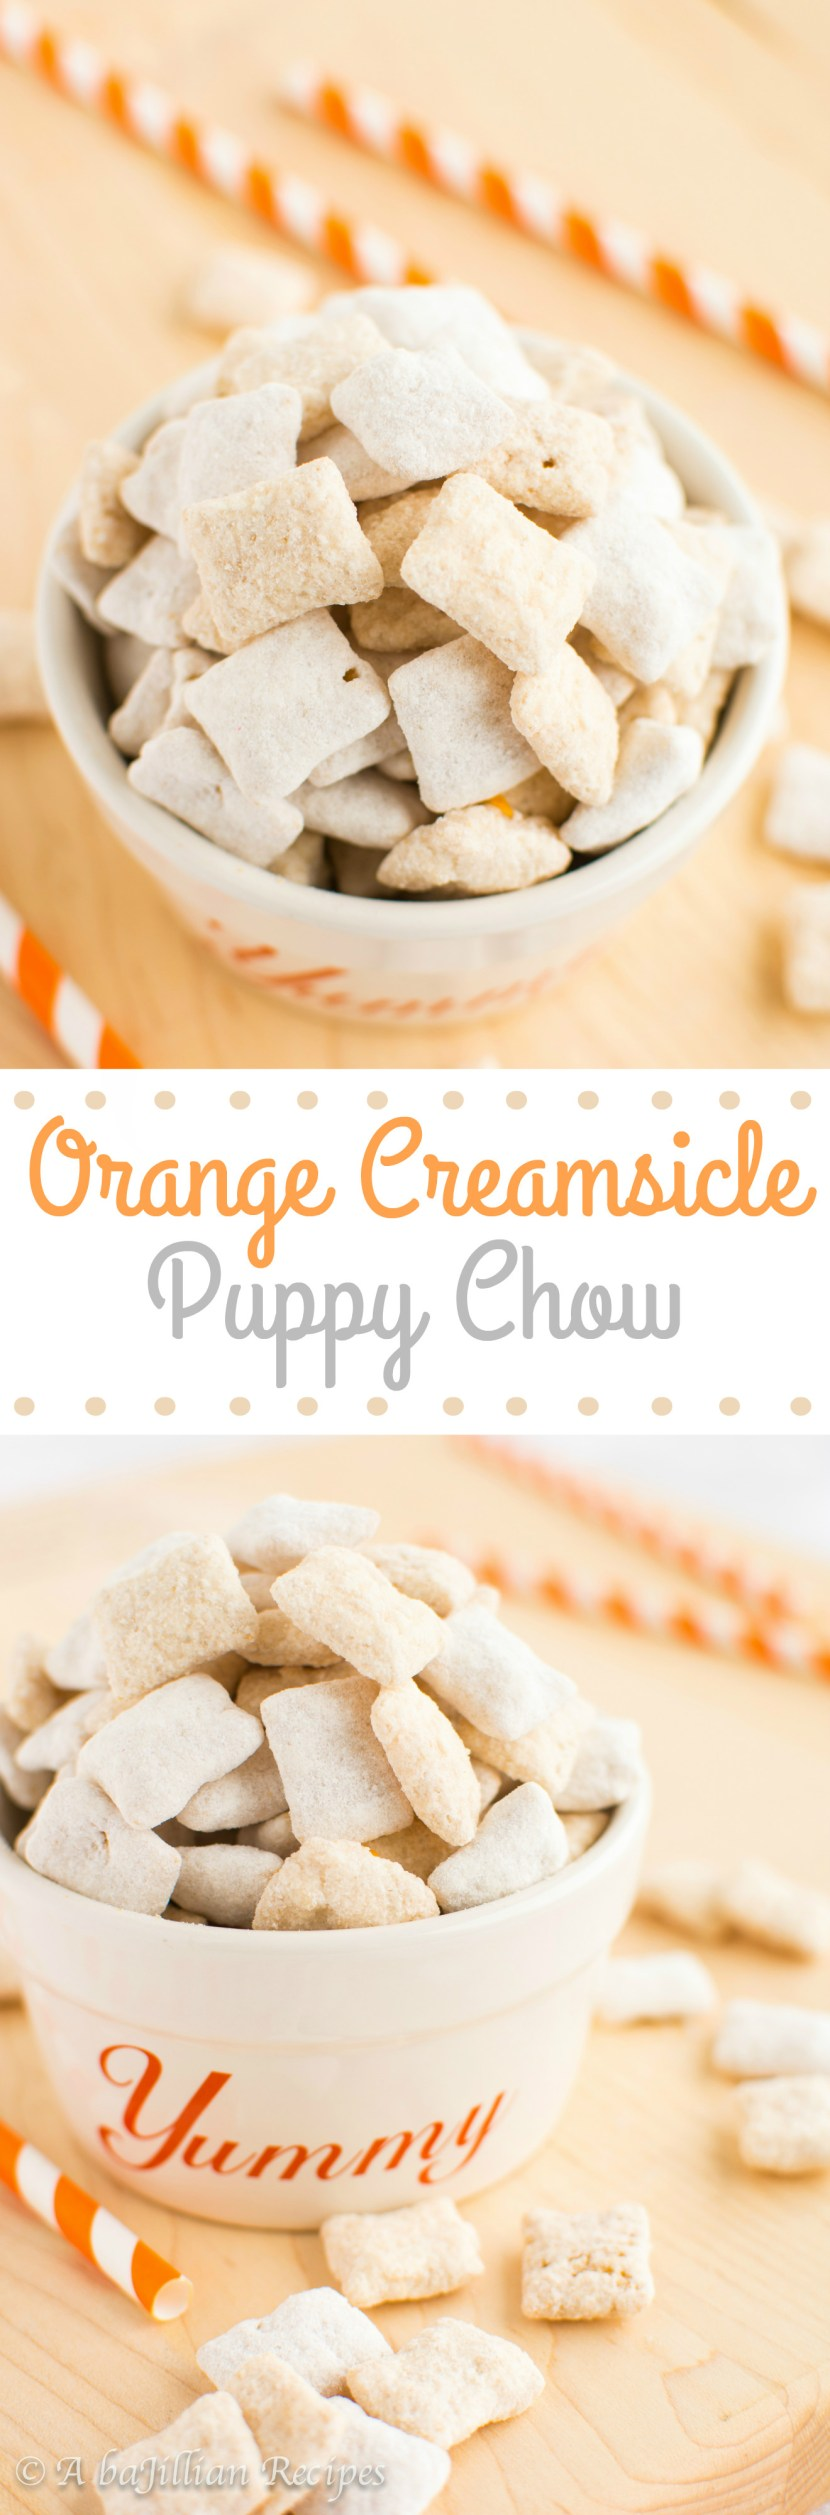 Orange Creamsicle Muddy Buddies | A baJillian Recipes1